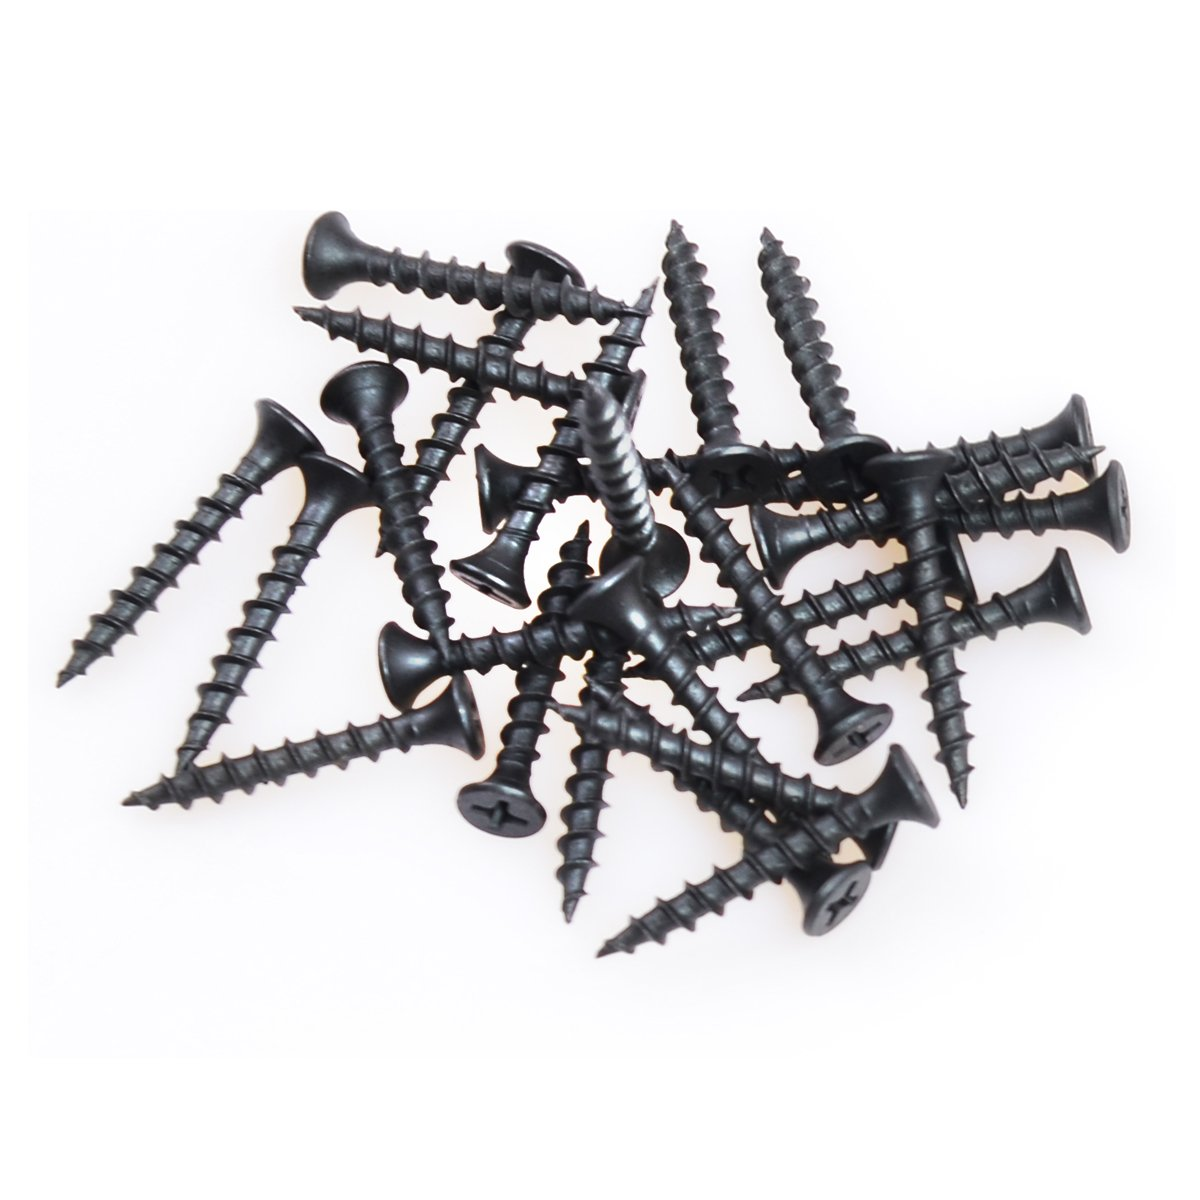 South Main Hardware 330105 Bugle Head 1-1/4 Inch #8 Coarse Thread Drywall Screw with Phillips Drive Bugle Head, 9 lbs, Black